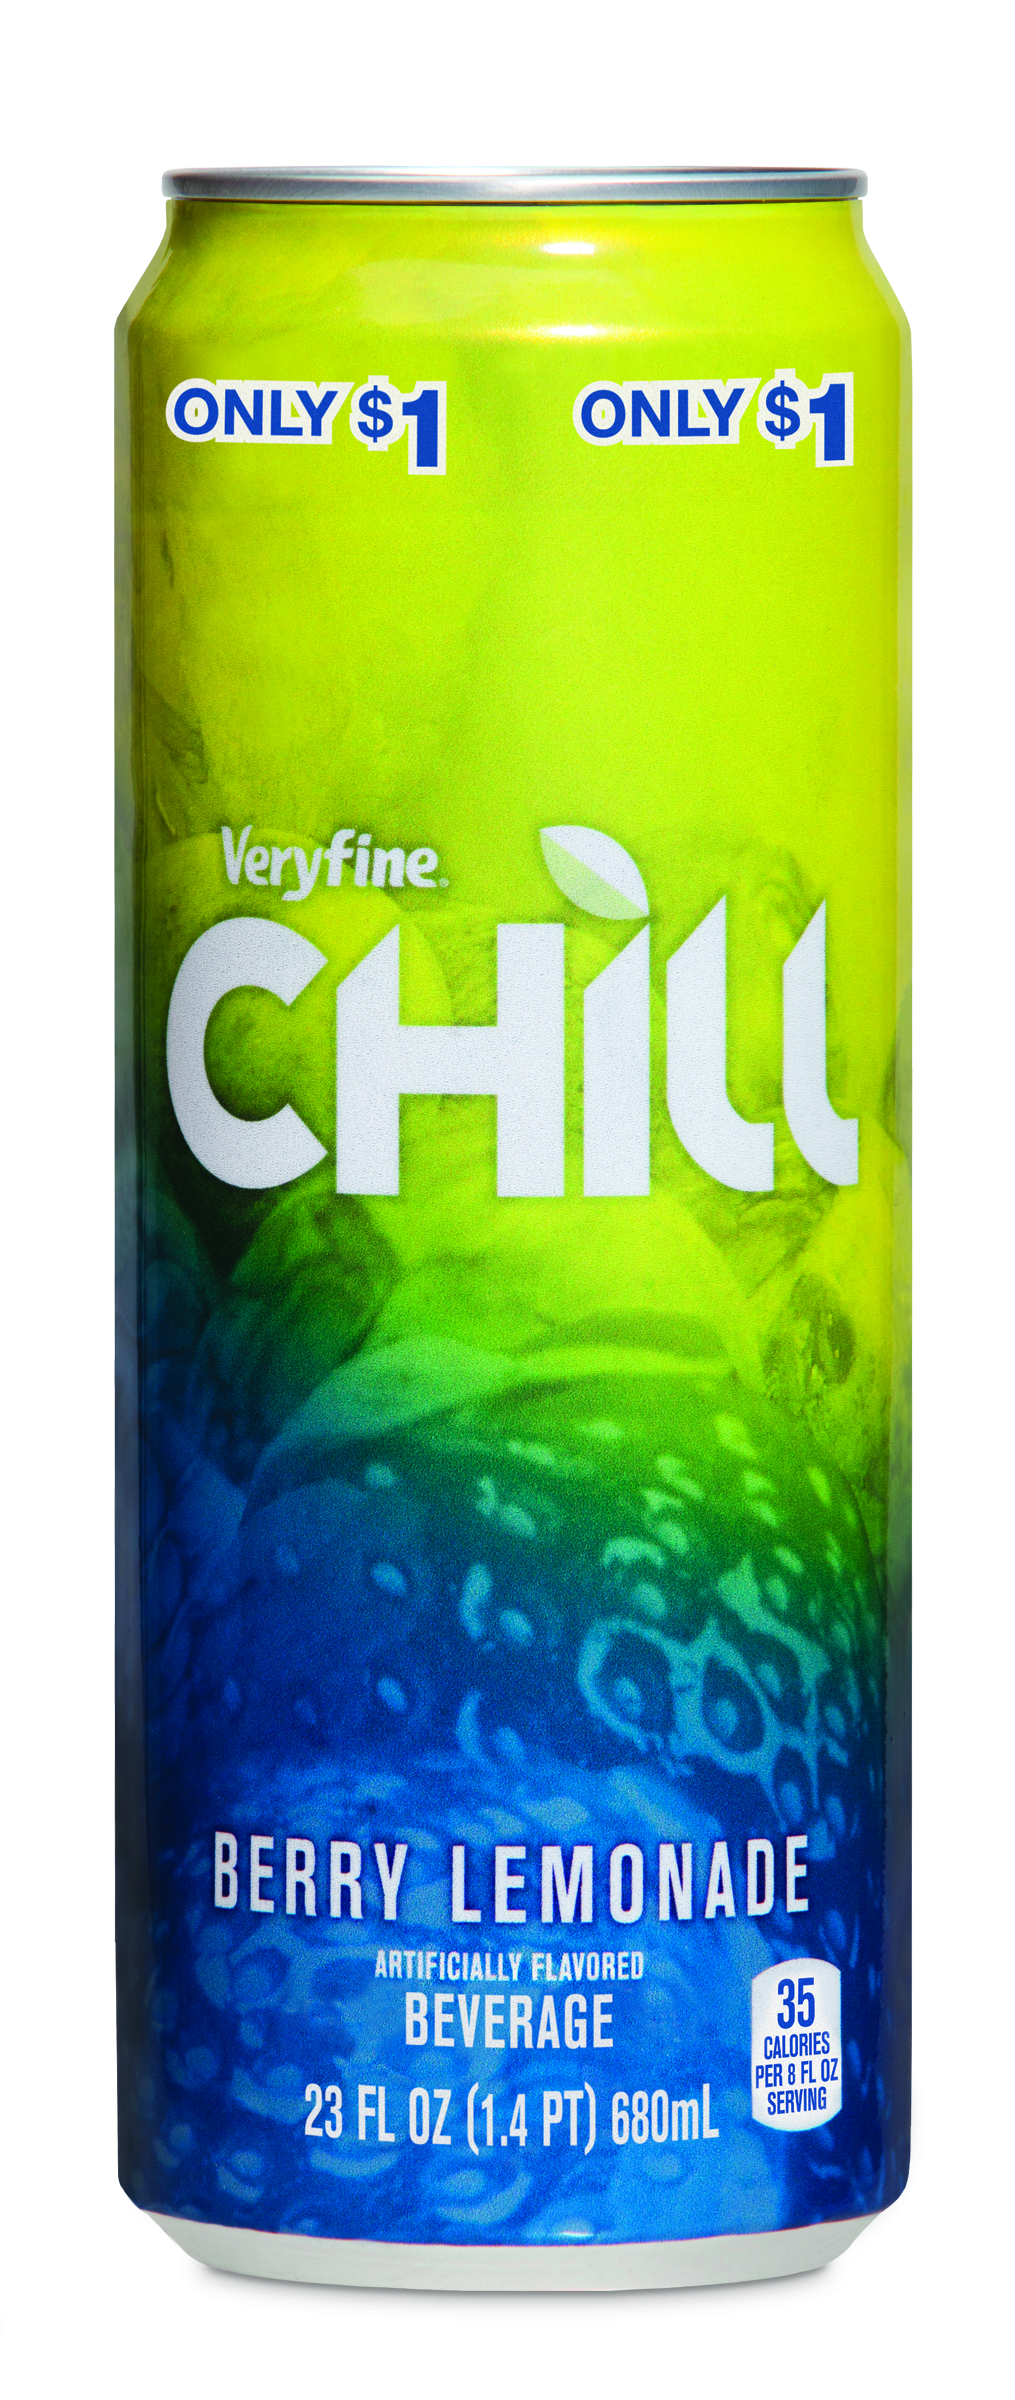 Veryfine CHILL Berry Lemonade